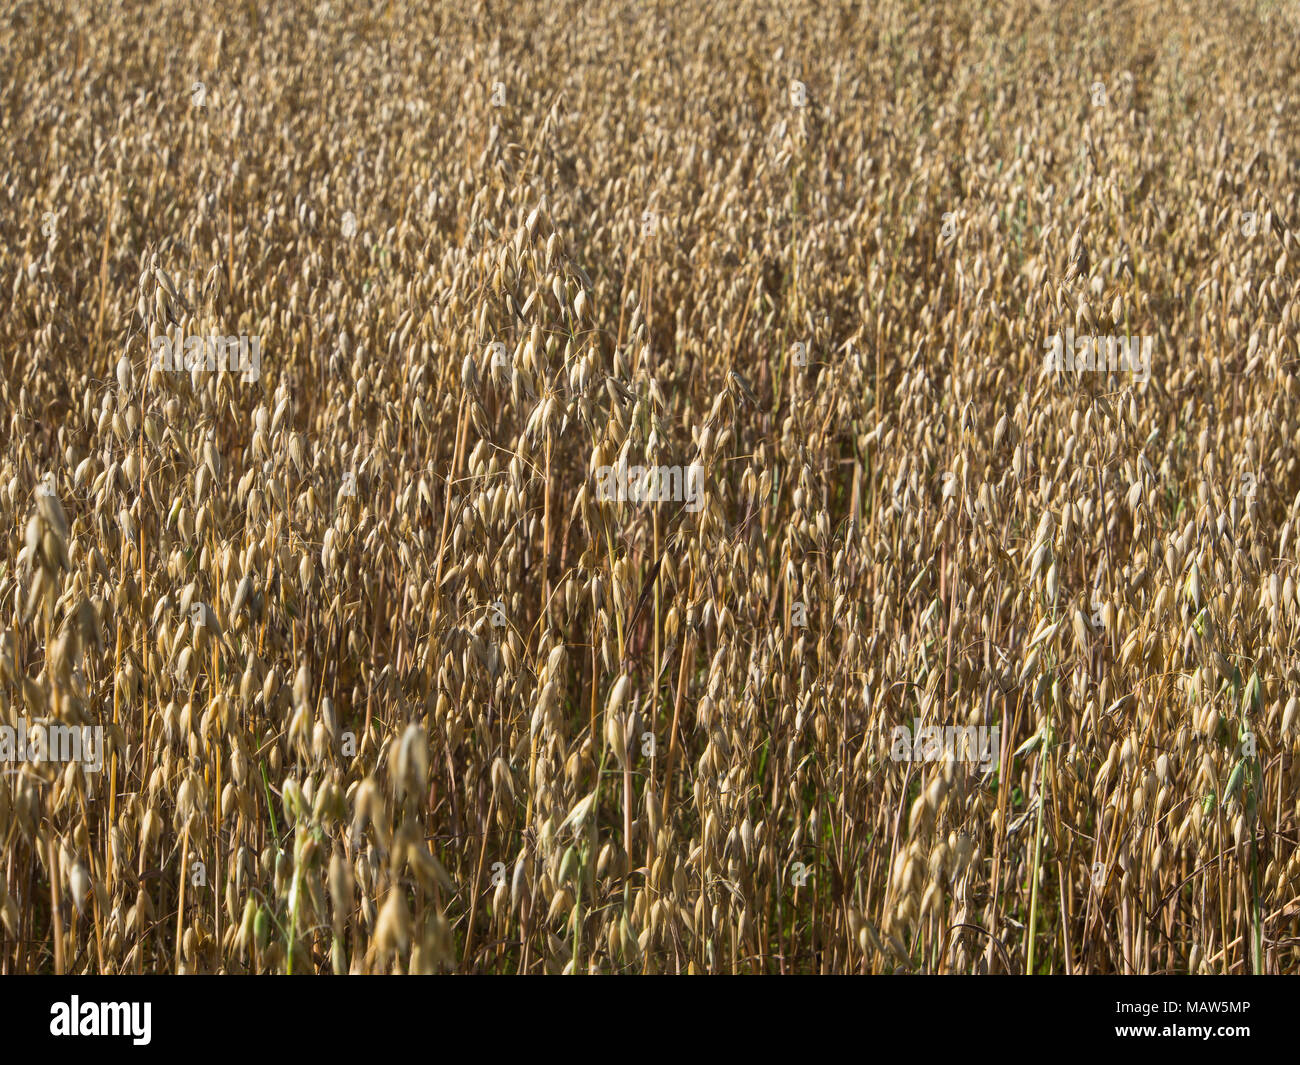 Norwegian oat field with yellow ripe grain, a healthy cereal here farmed in the suburb Østensjø in Oslo Norway - Stock Image